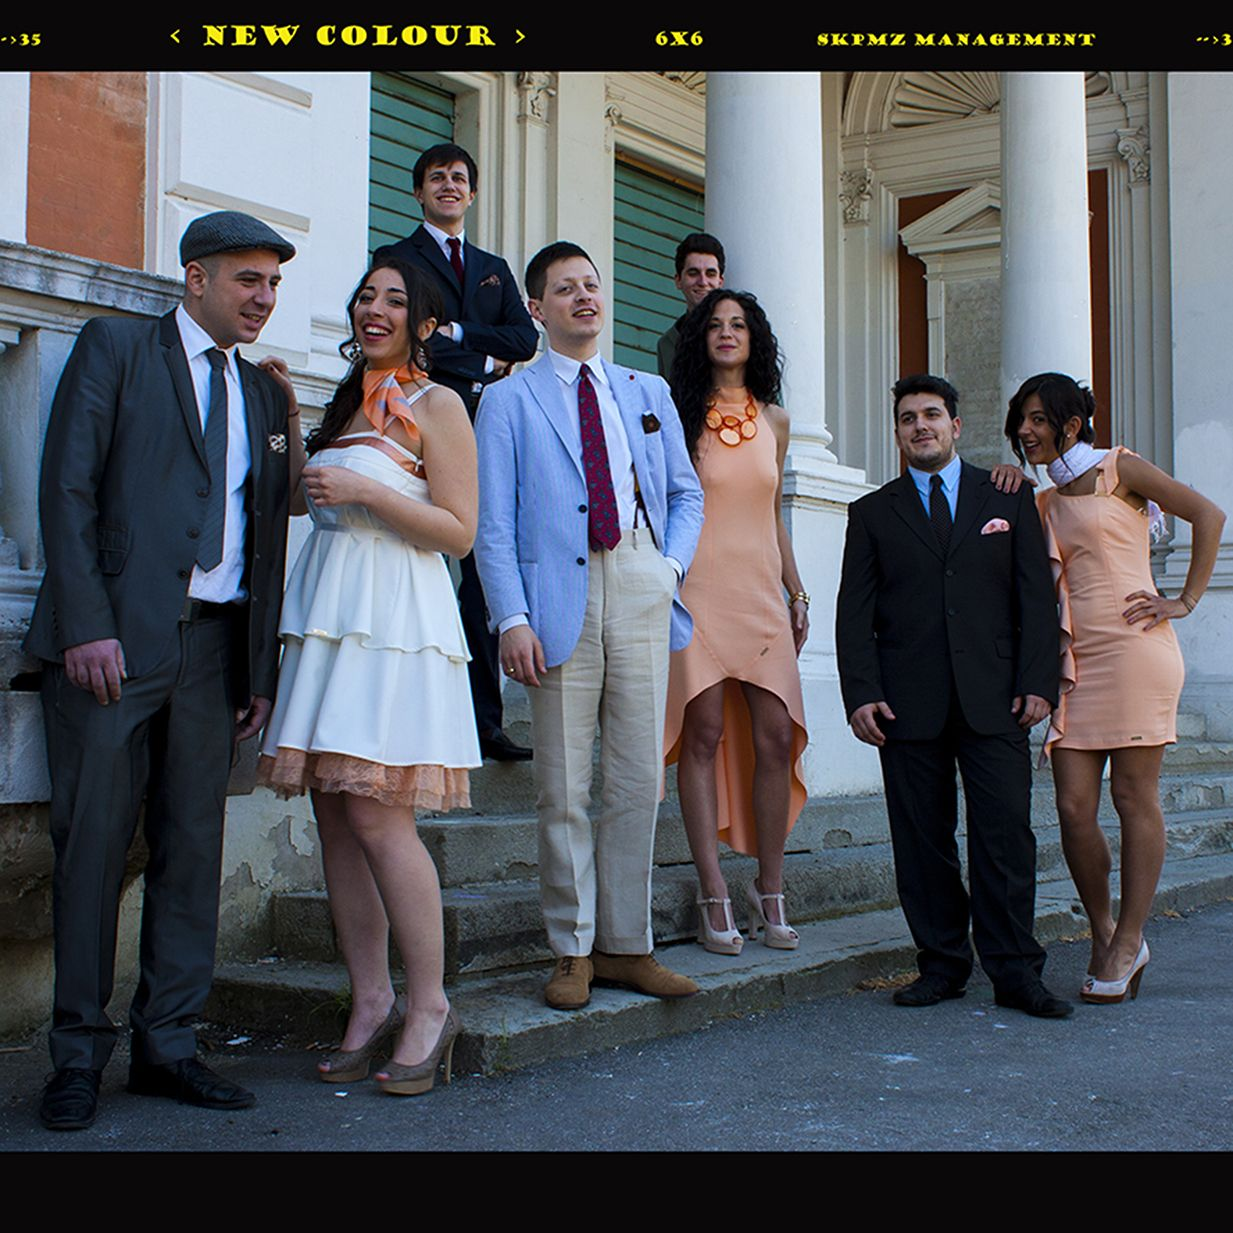 New Colour is a soul band from Bologna, Italy  Five